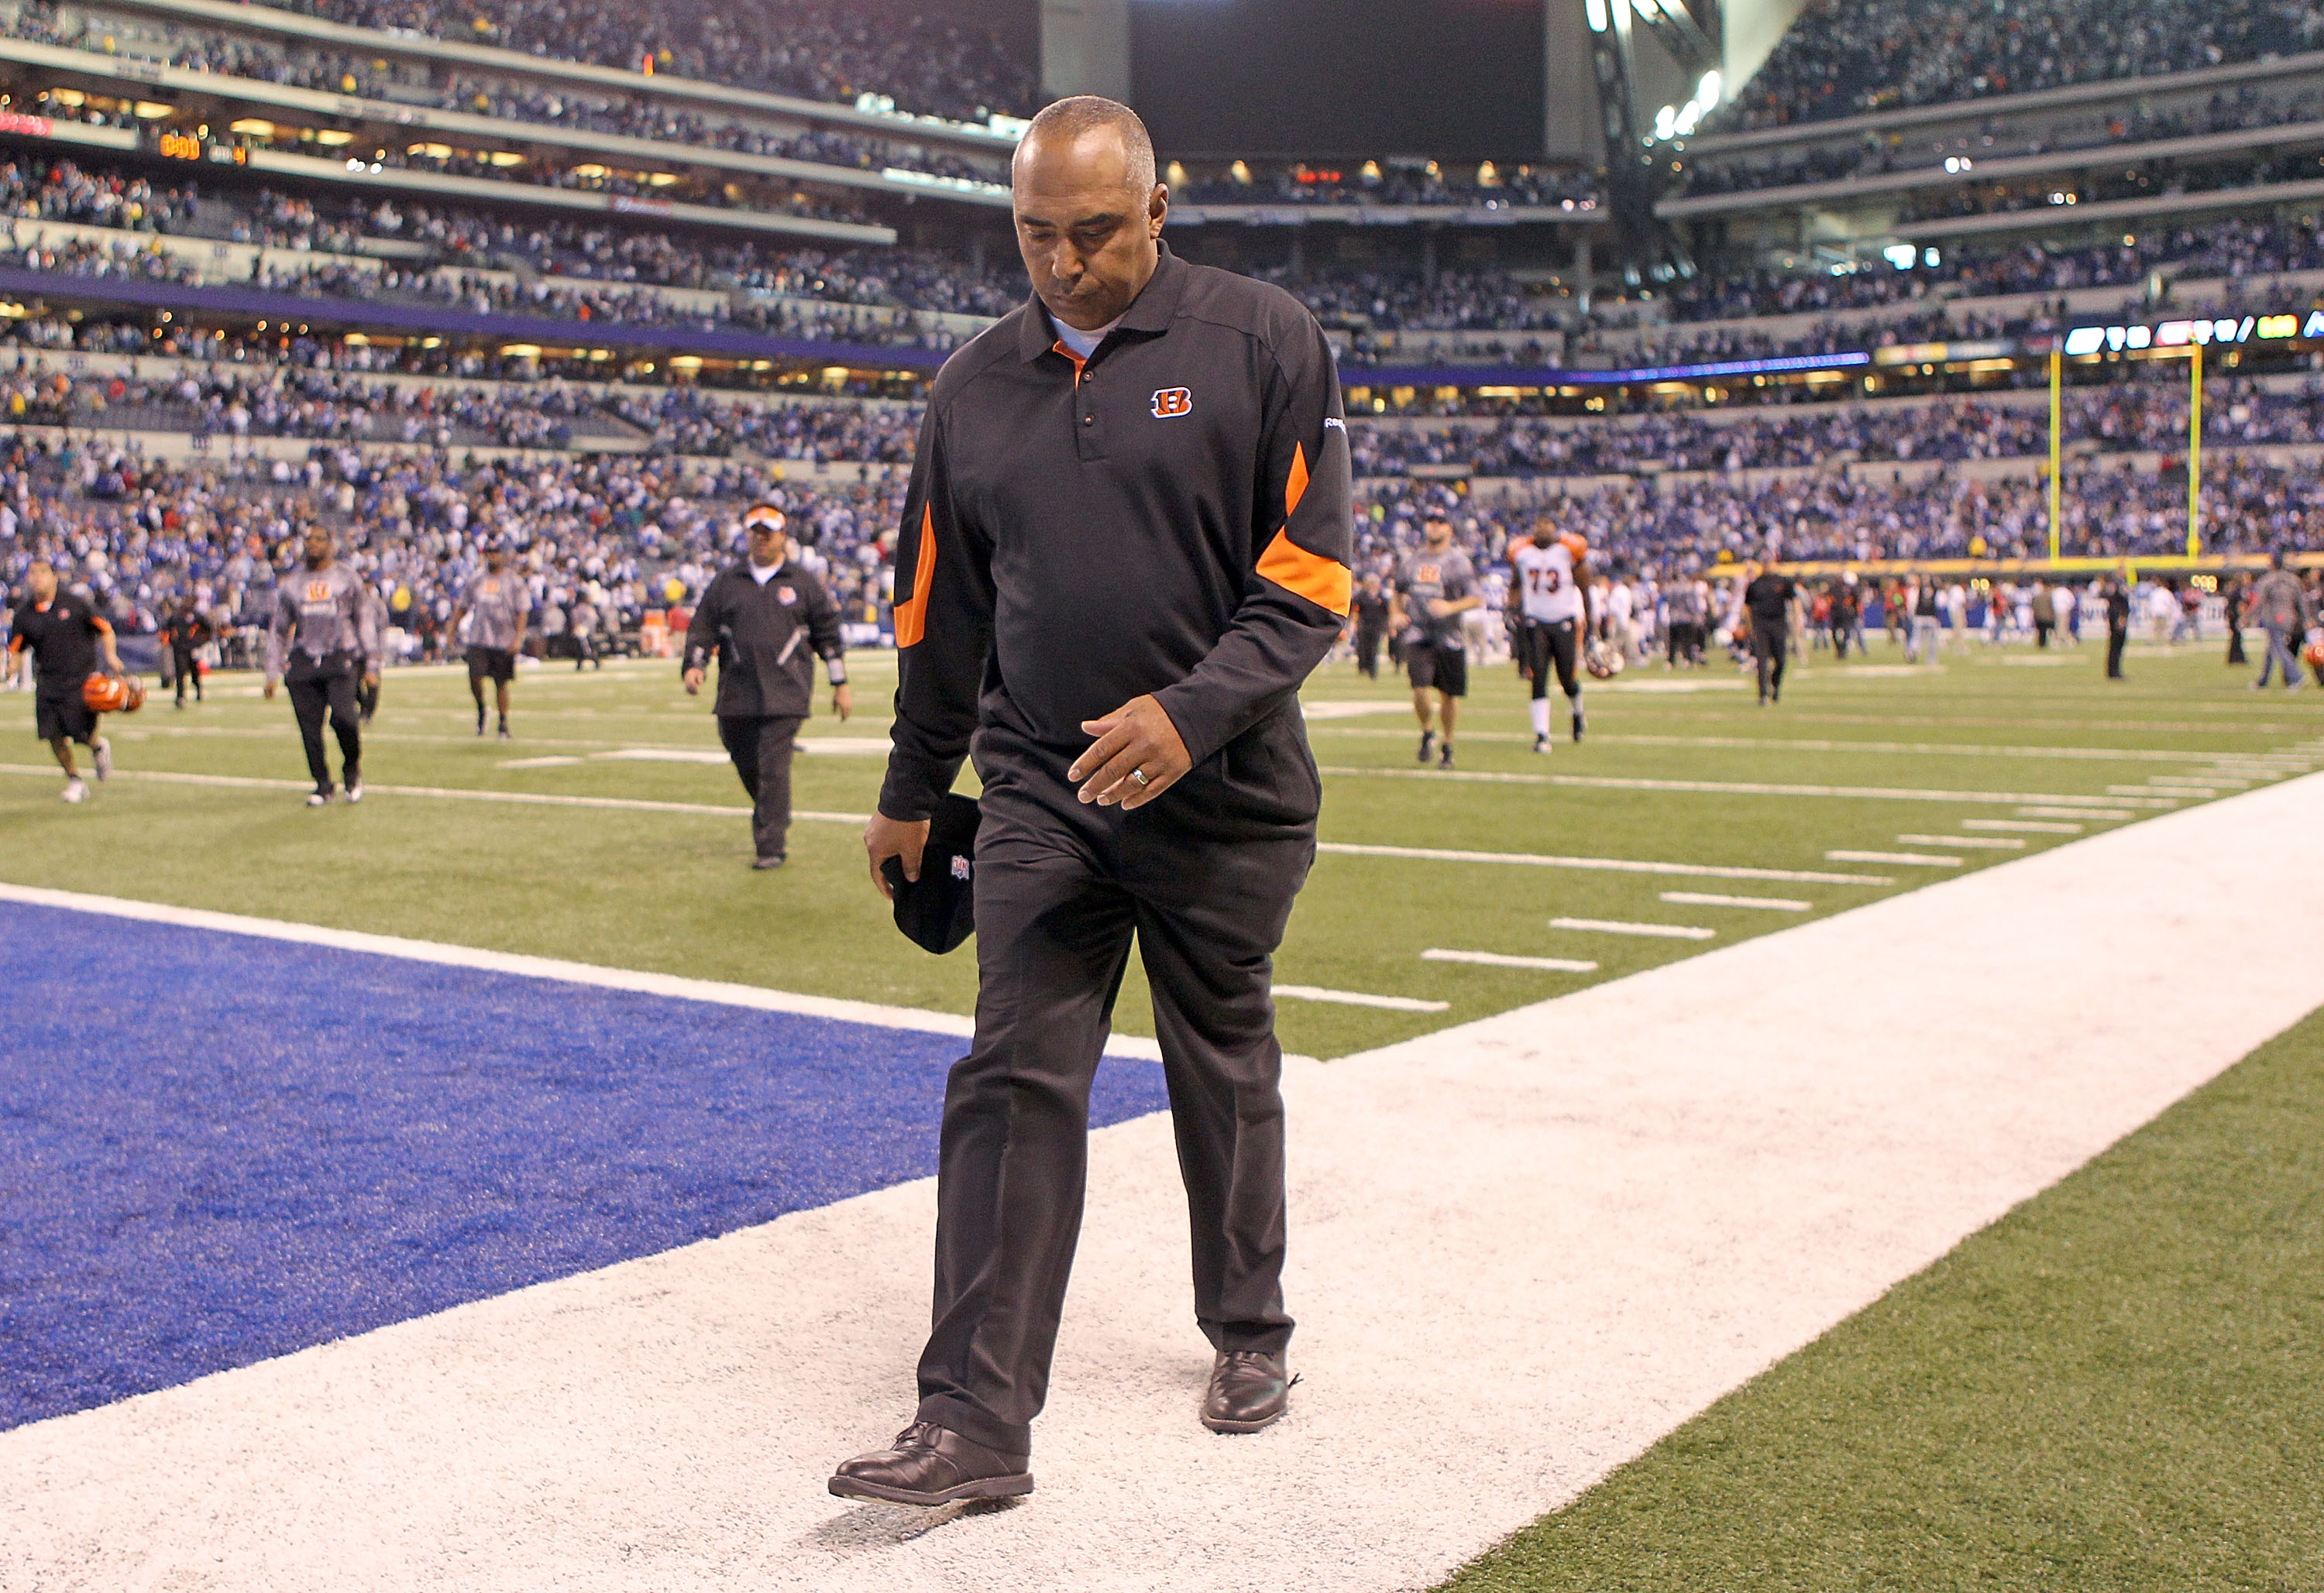 INDIANAPOLIS - NOVEMBER 14:  Marvin Lewis the Head Coach of the Cincinnati Bengals walks off of the field following the Bengals 23-17 loss to the Indianapolis Colts in the NFL game at Lucas Oil Stadium on November 14, 2010 in Indianapolis, Indiana. The Co